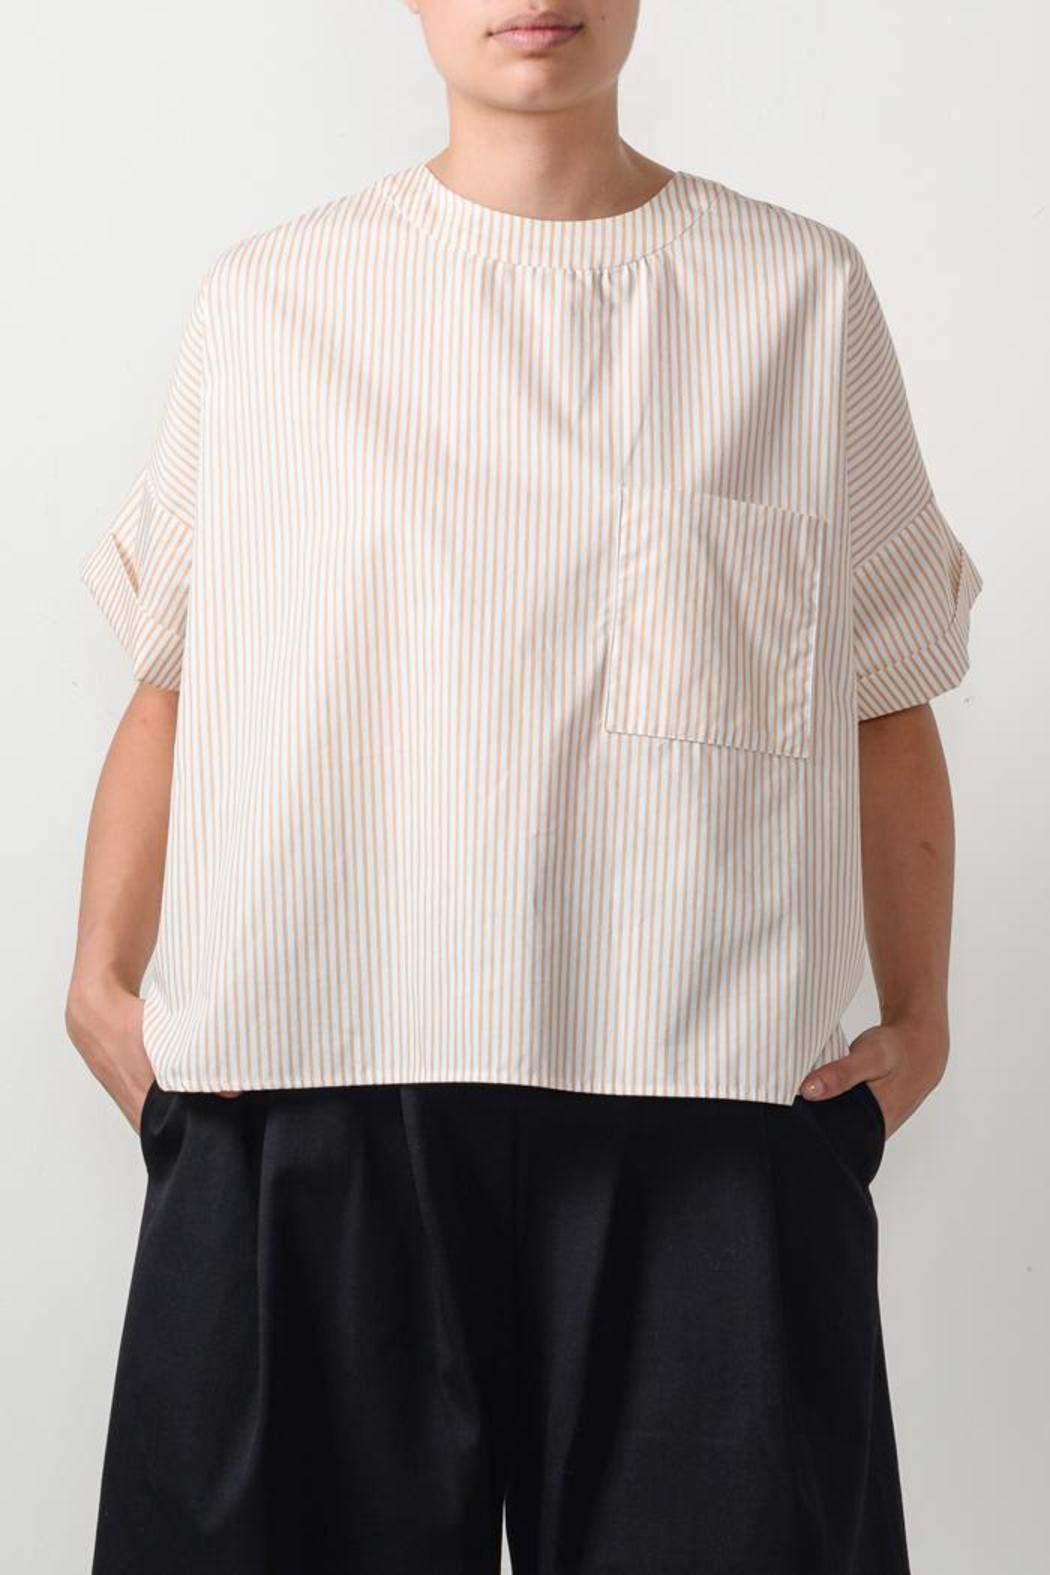 Suzanne Rae Cropped Pocket T